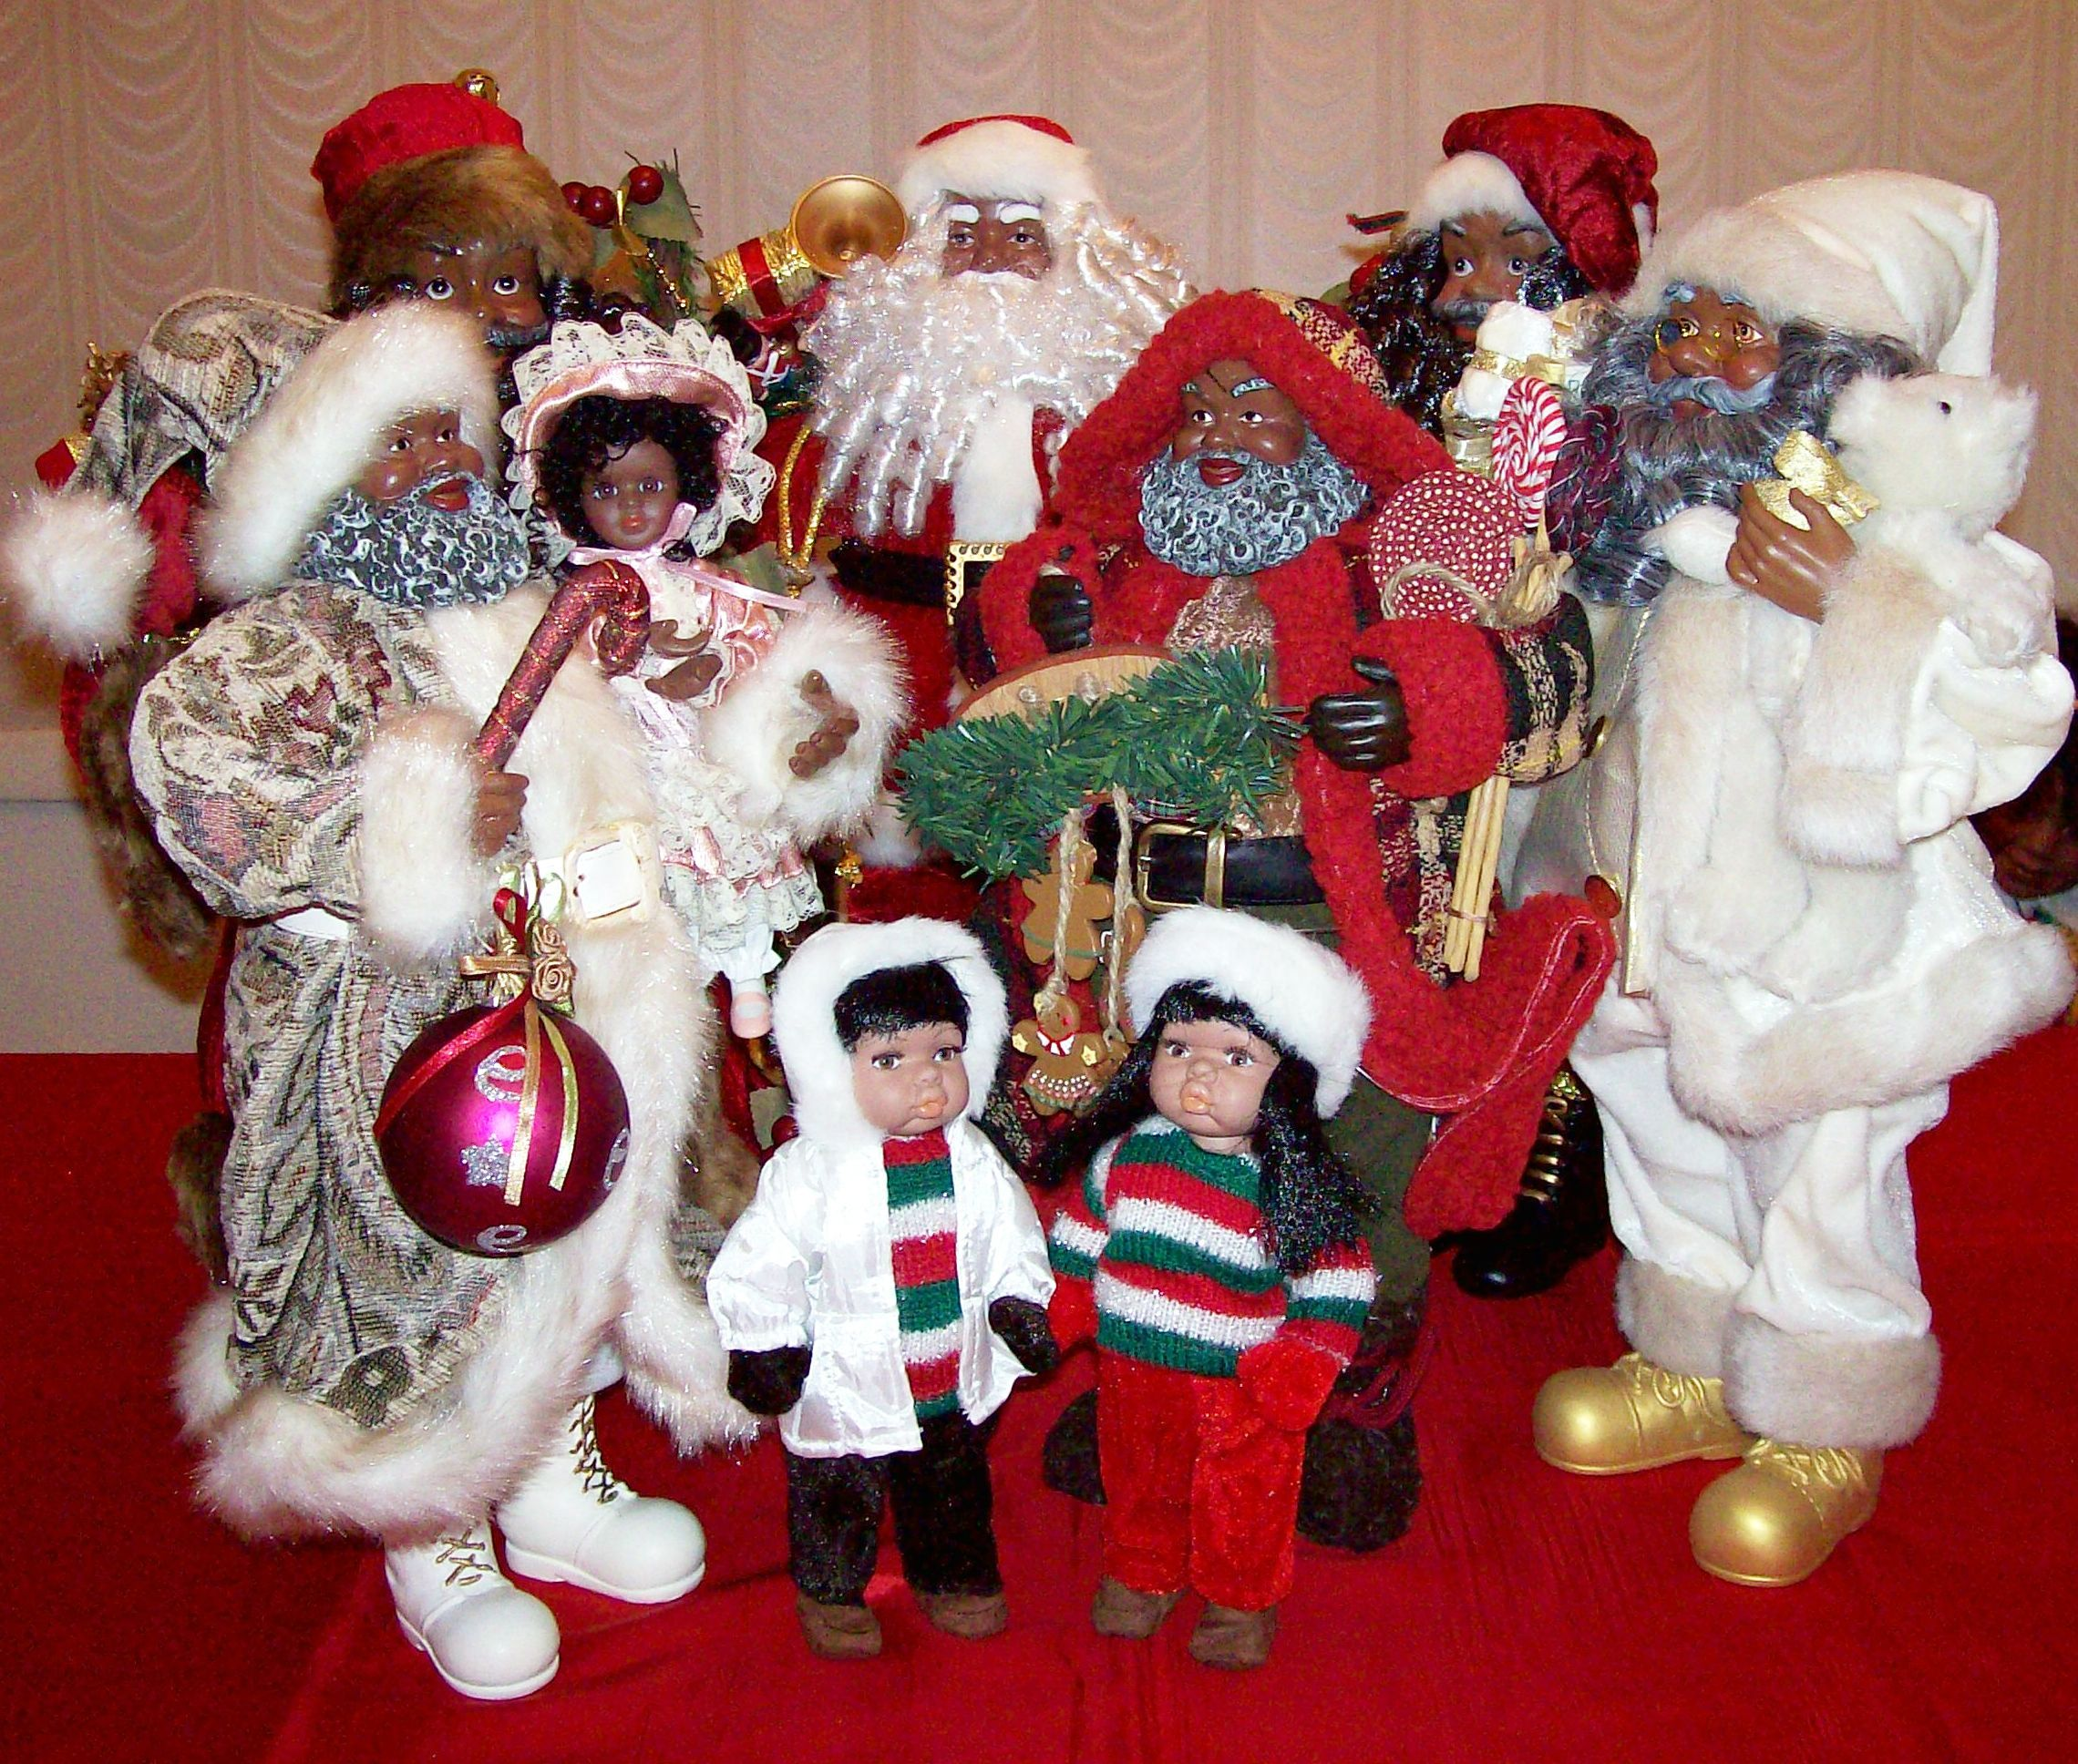 A gathering of various African American Santas and two doll